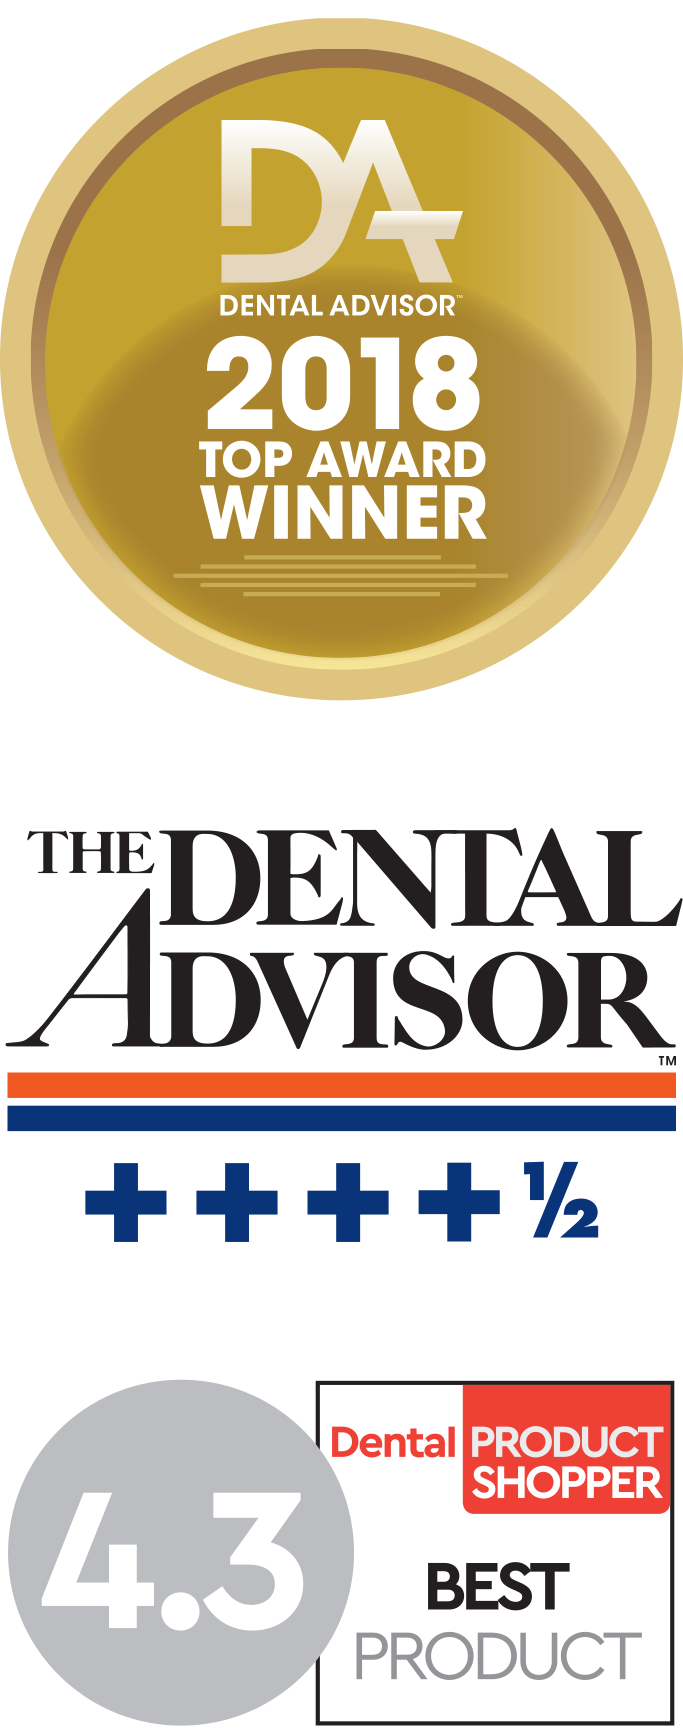 dental advisor and dental product shopper awards